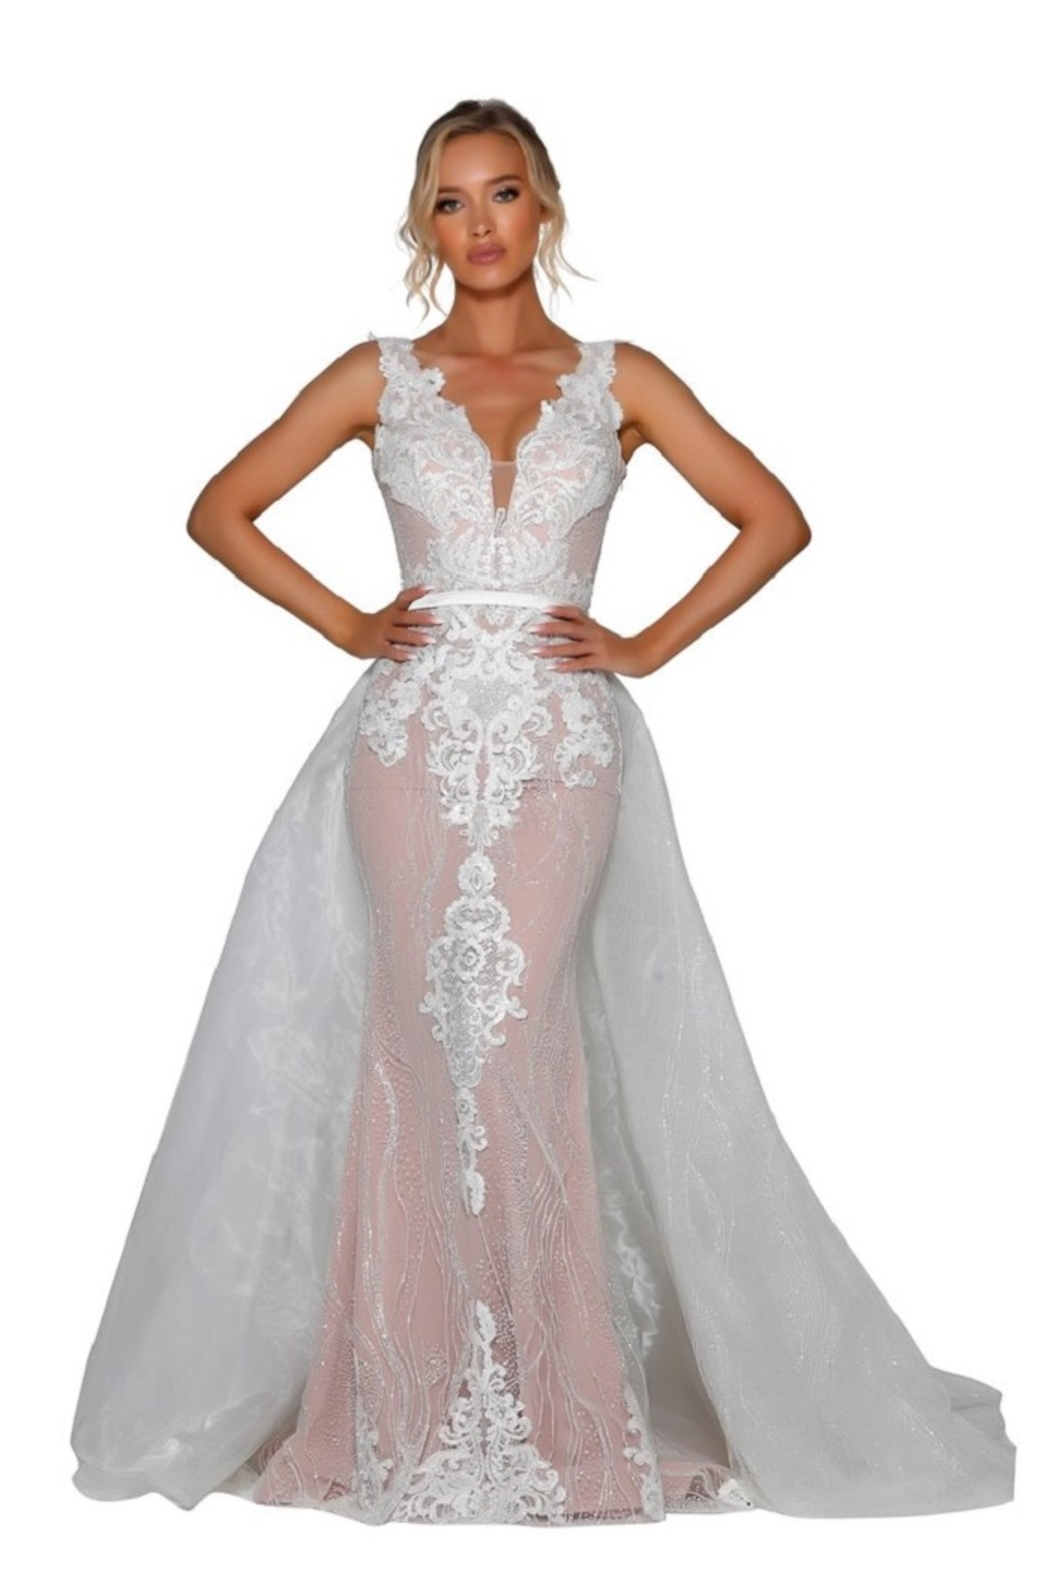 PORTIA AND SCARLETT Ivory & Nude Glitter Lace Bridal Gown With Detachable Train - Main Image